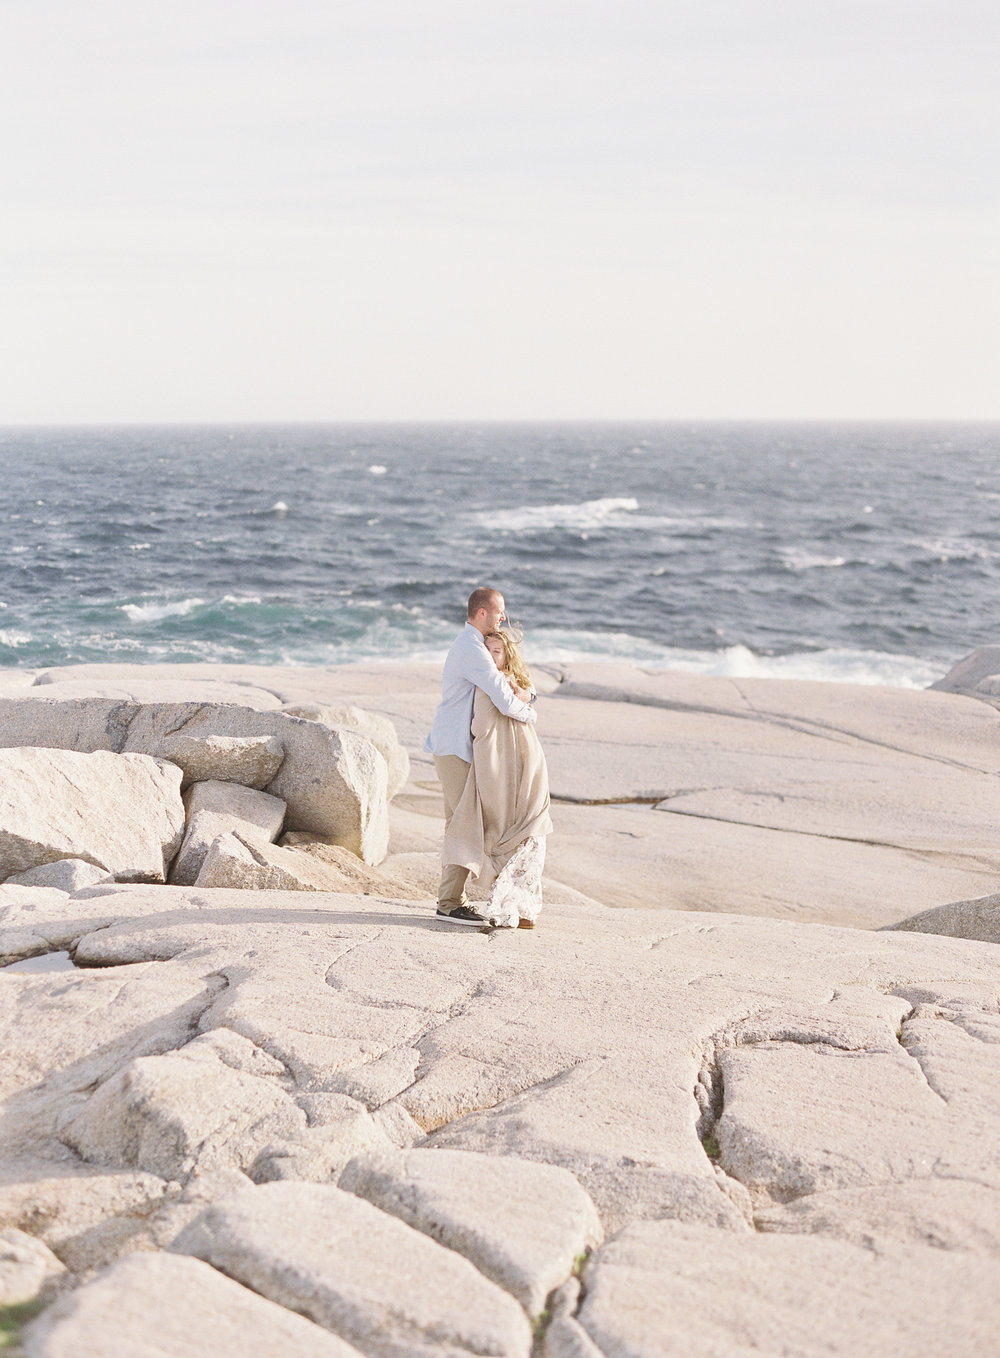 Jacqueline Anne Photography - Alex and Andrew Engagement at Peggy's Cove - Halifax-108.jpg